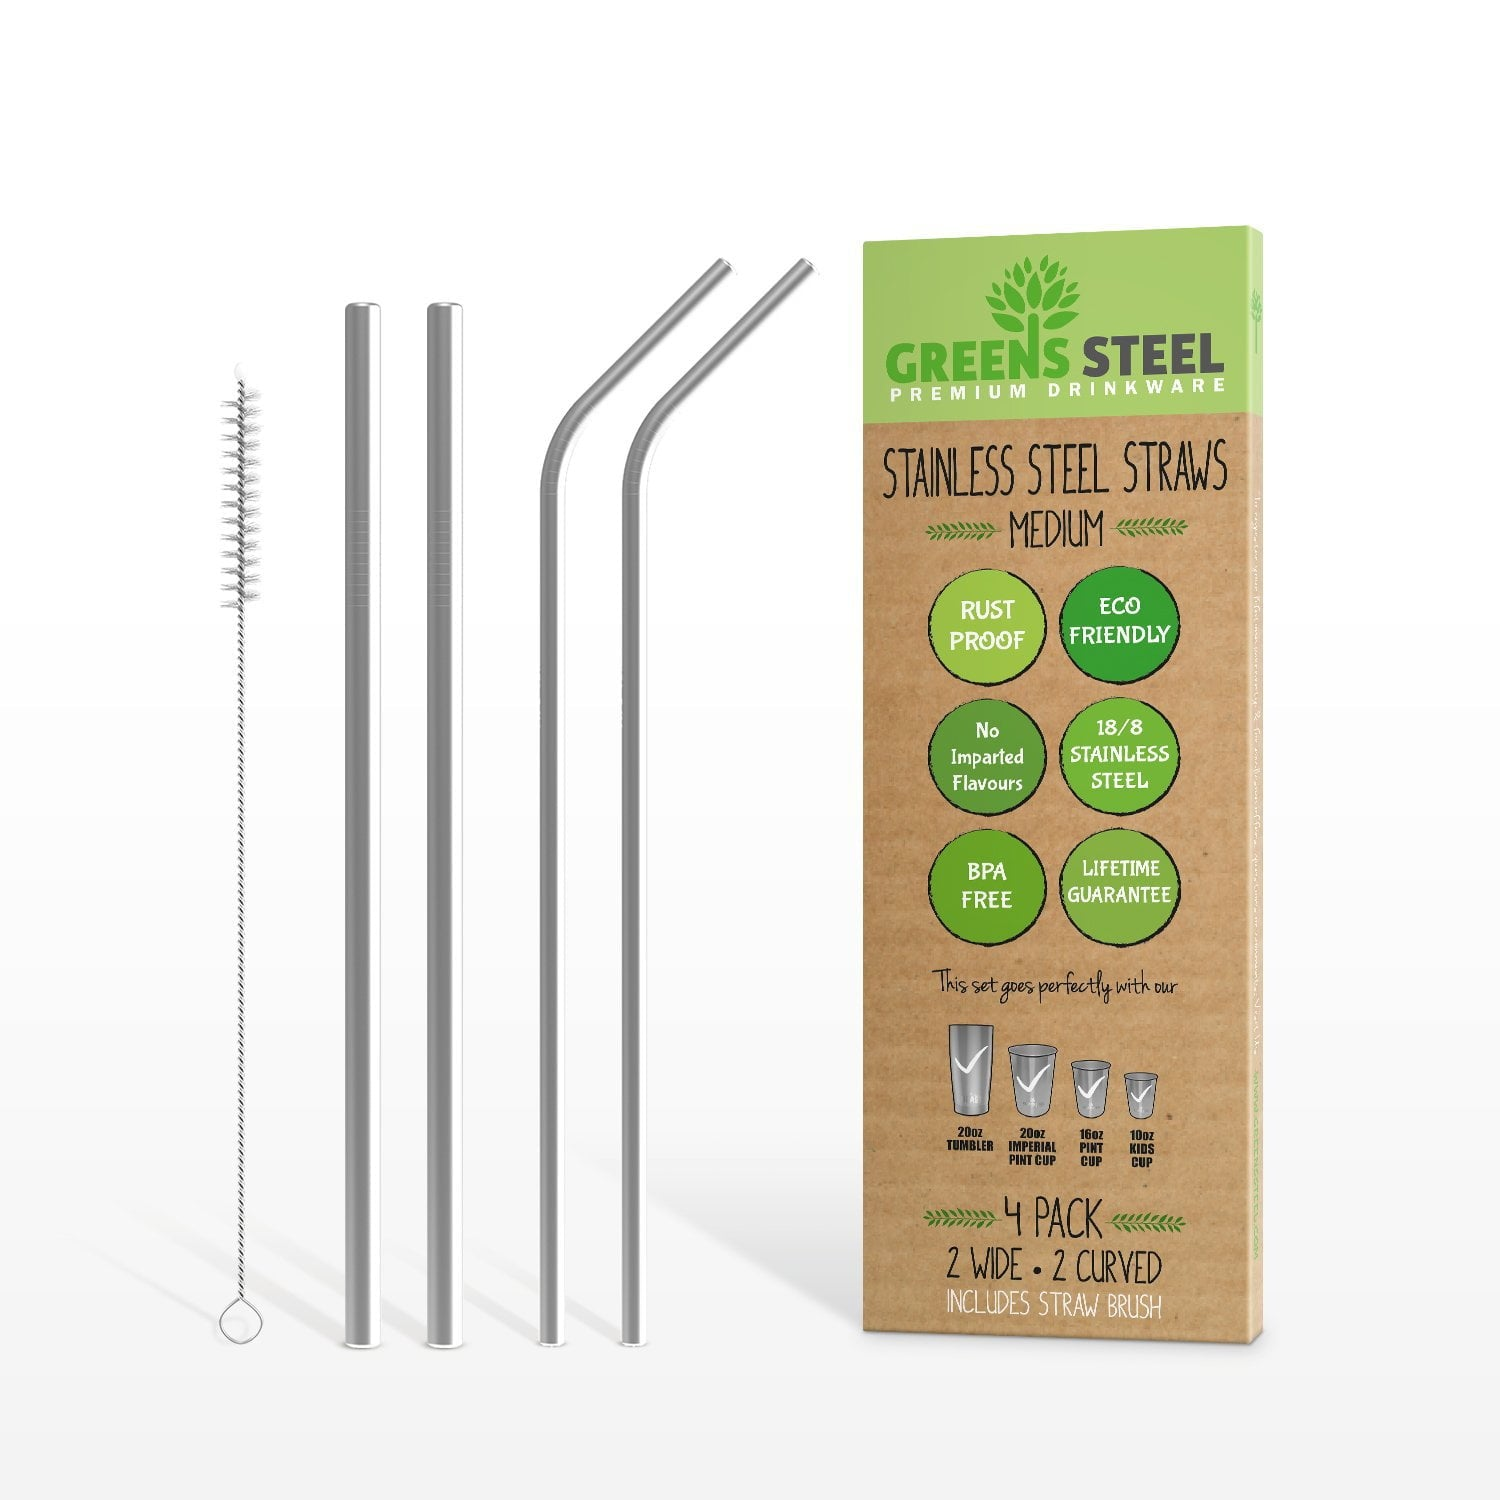 Reusable and Eco Friendly 4 Pack Lifetime Guarantee Stainless Steel Extra Long Smoothie Straws